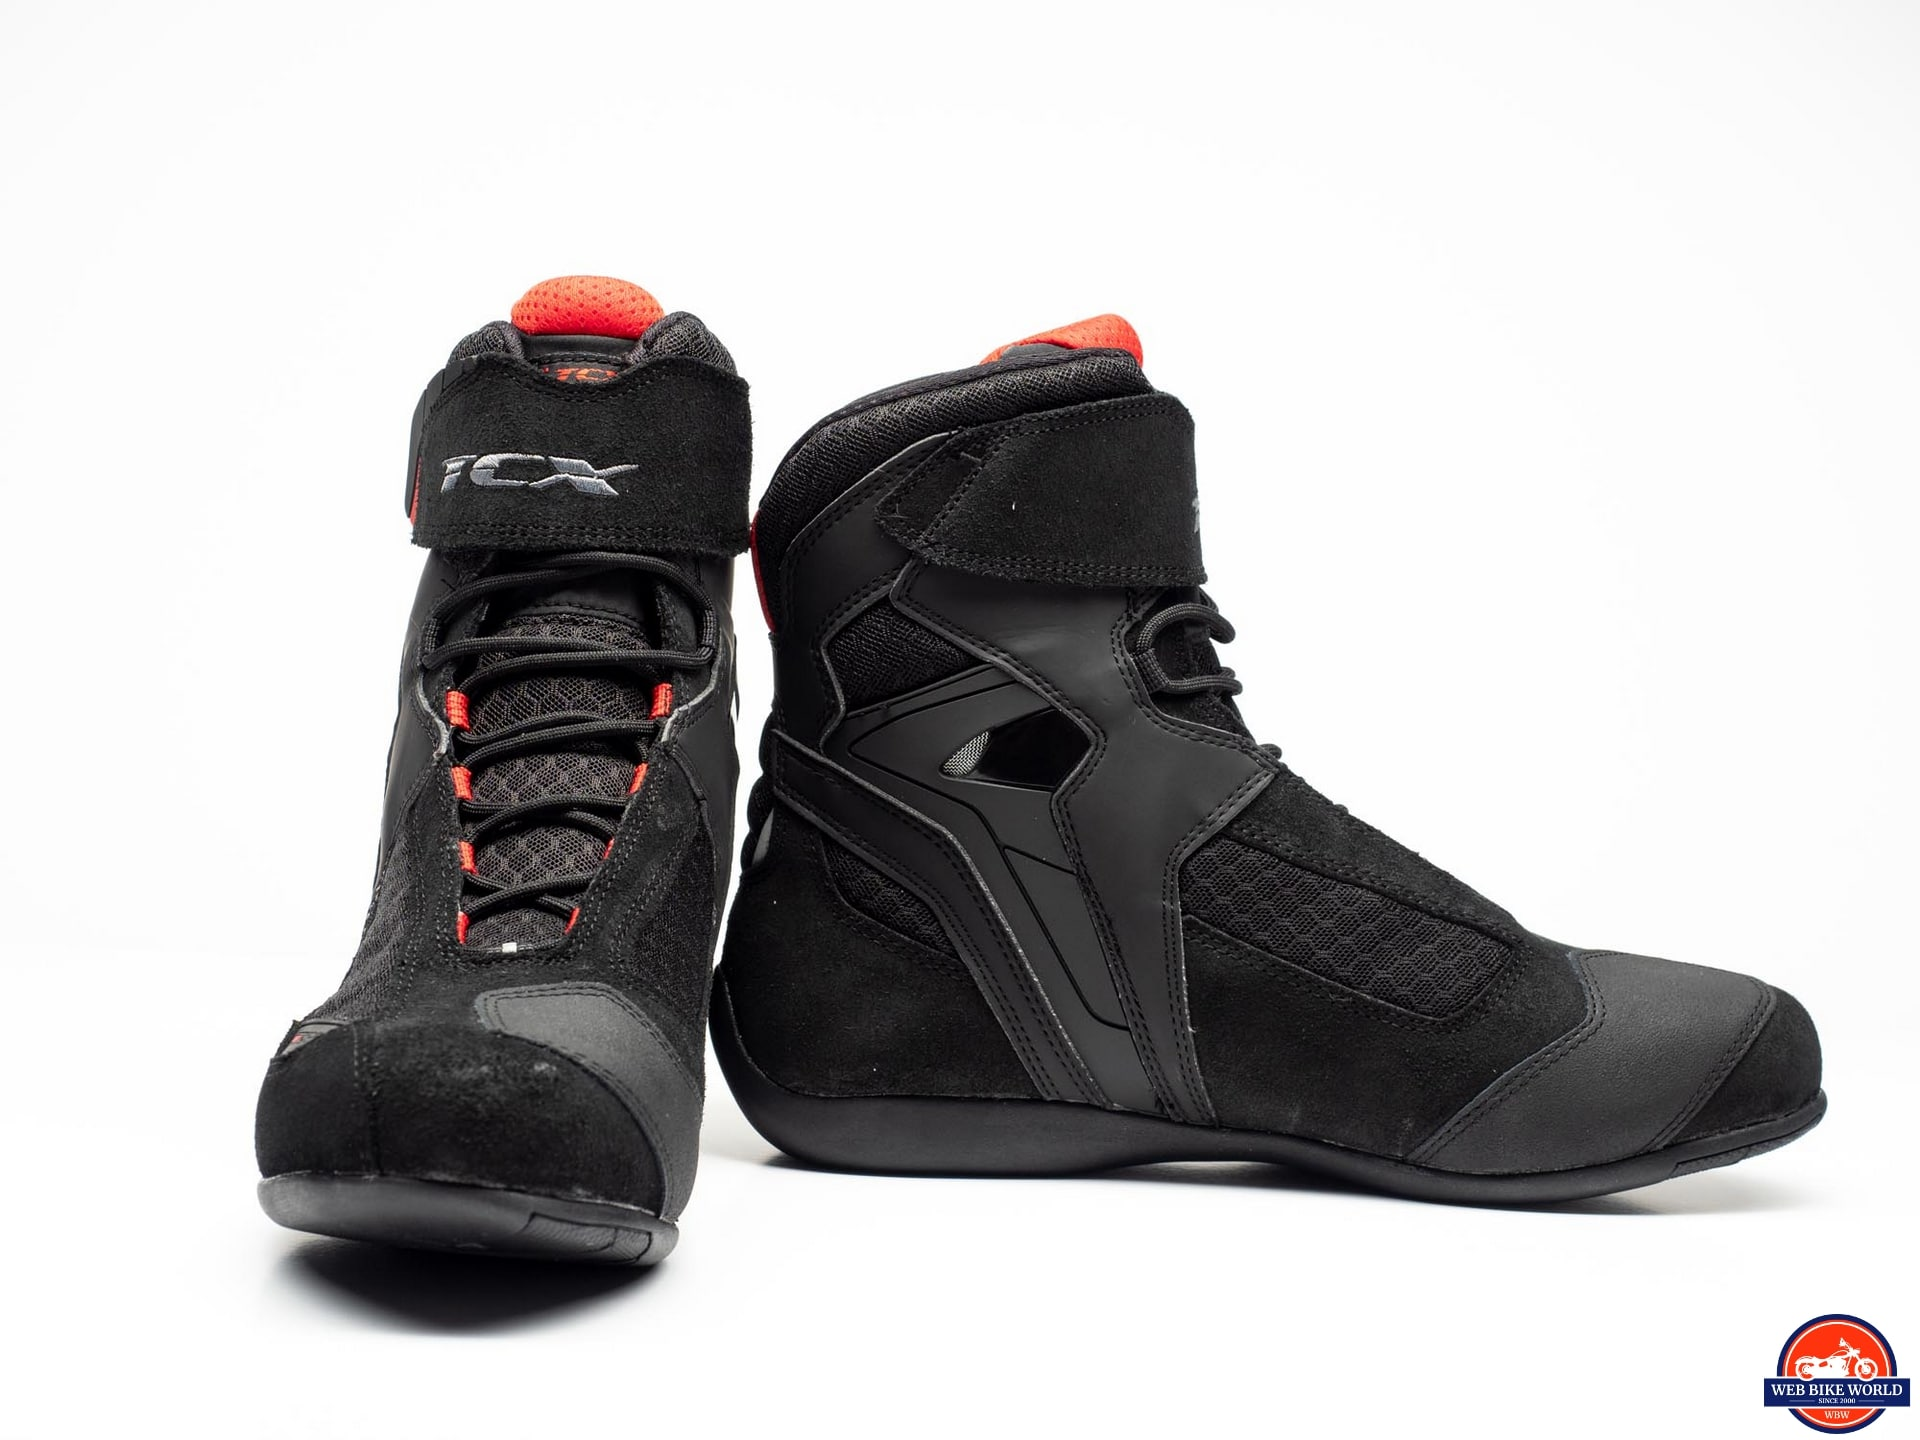 TCX Vibe Air Boots full view